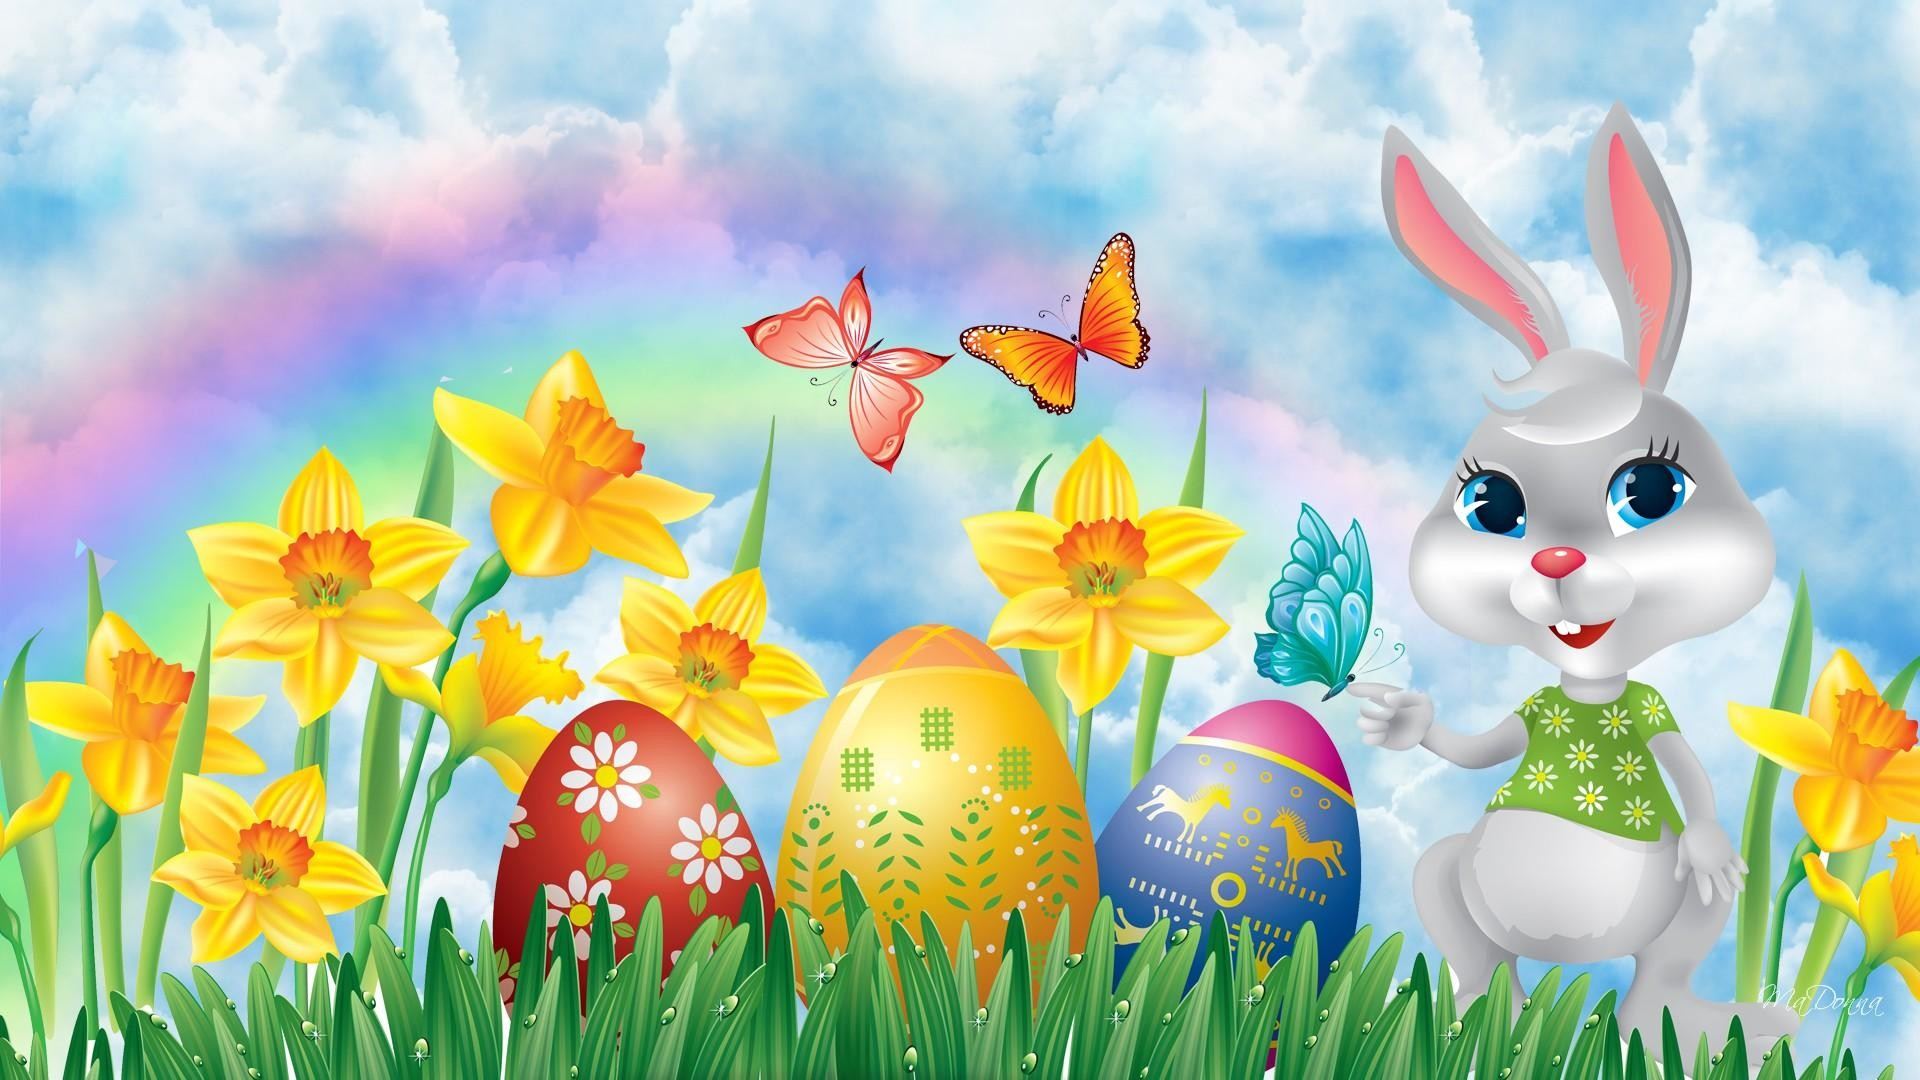 1920x1080 Easter Backgrounds Wallpaper (05)